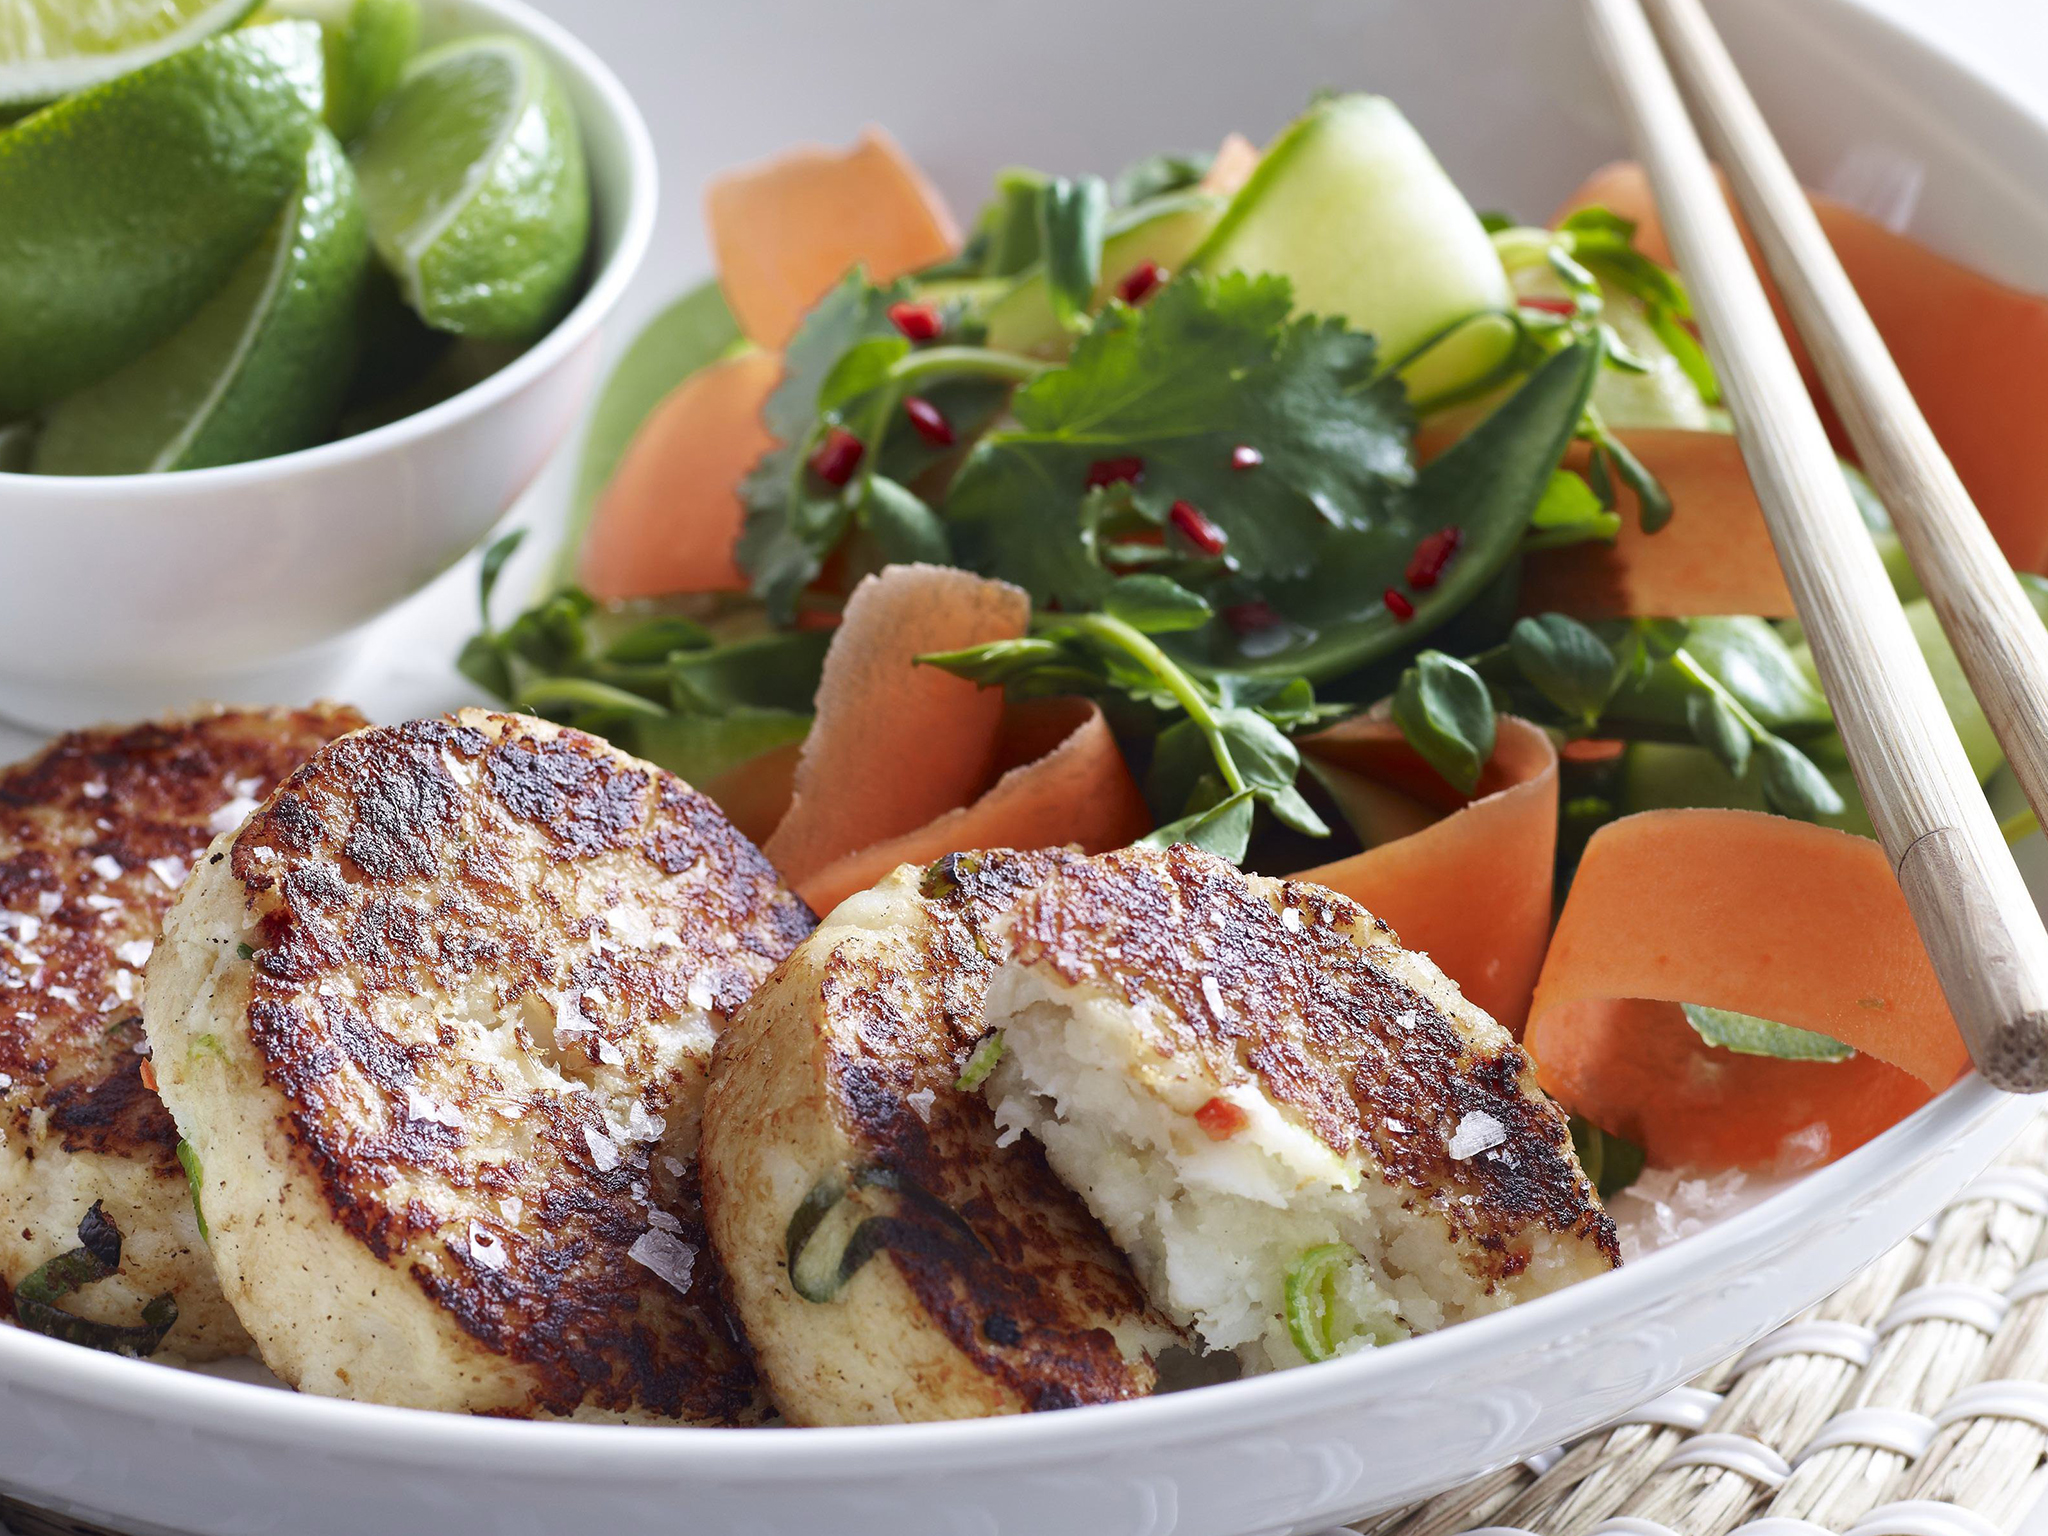 Asianstyle fish cakes with cucumber and carrot salad recipe Food